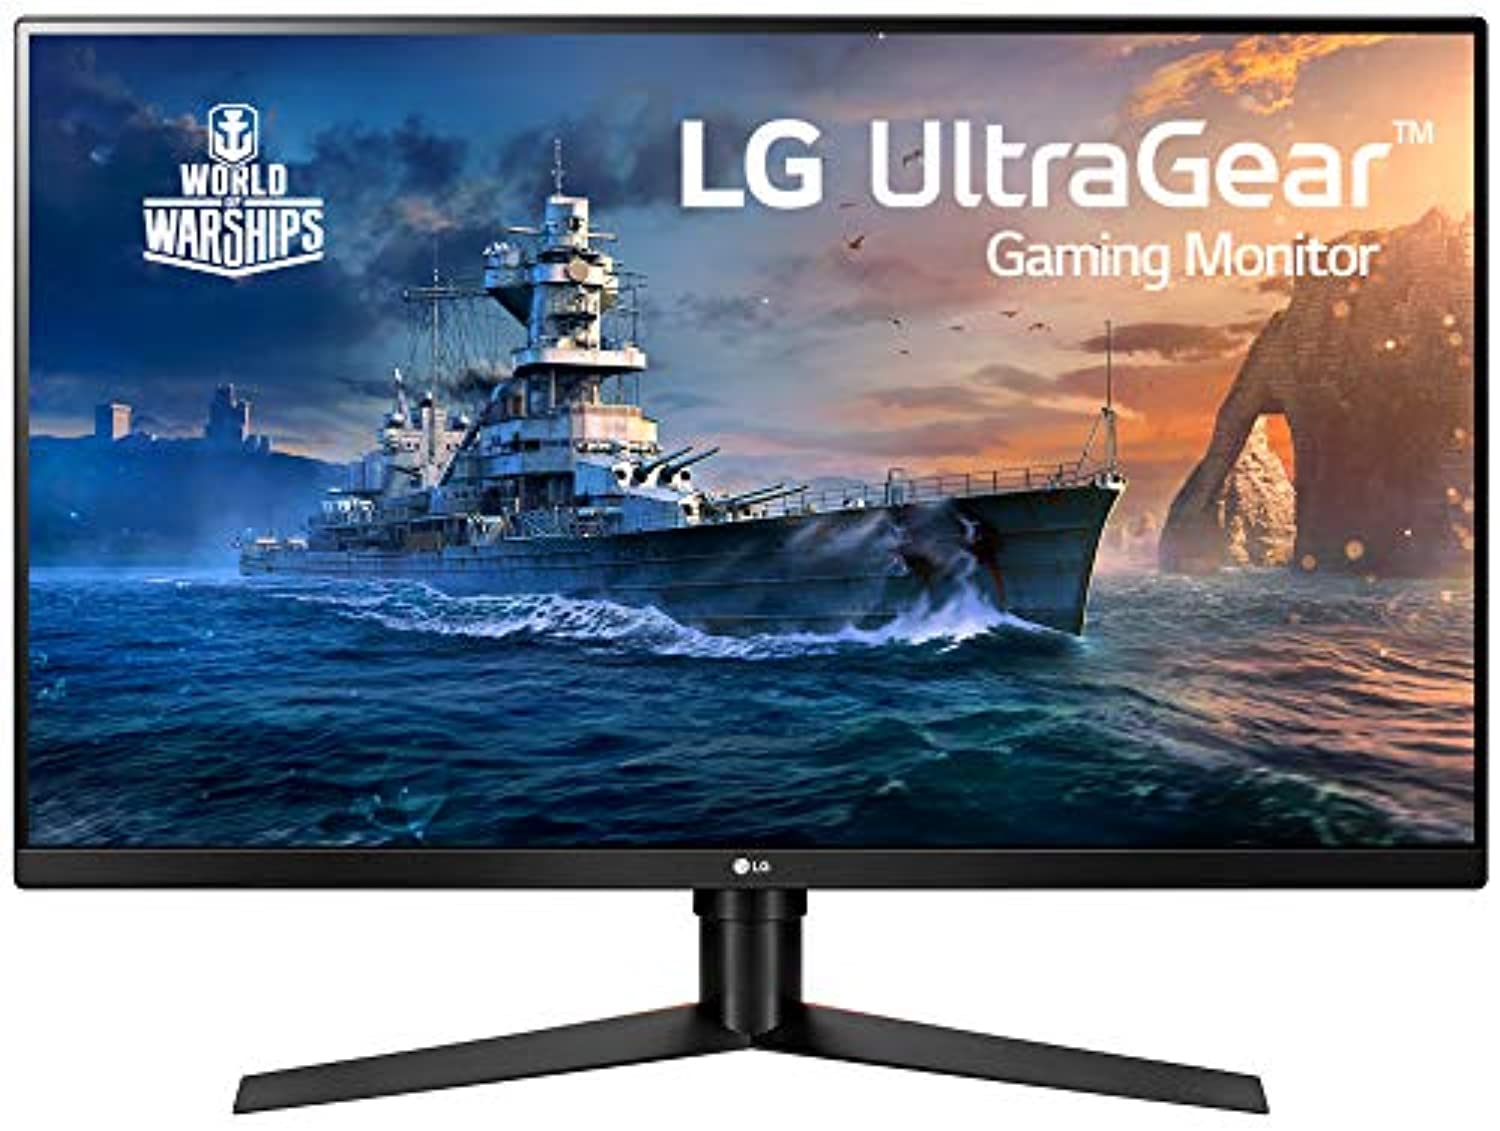 "Classier: Buy LG LG 32GK650F-B 32"" QHD Gaming Monitor with 144Hz Refresh Rate and Radeon FreeSync Technology"